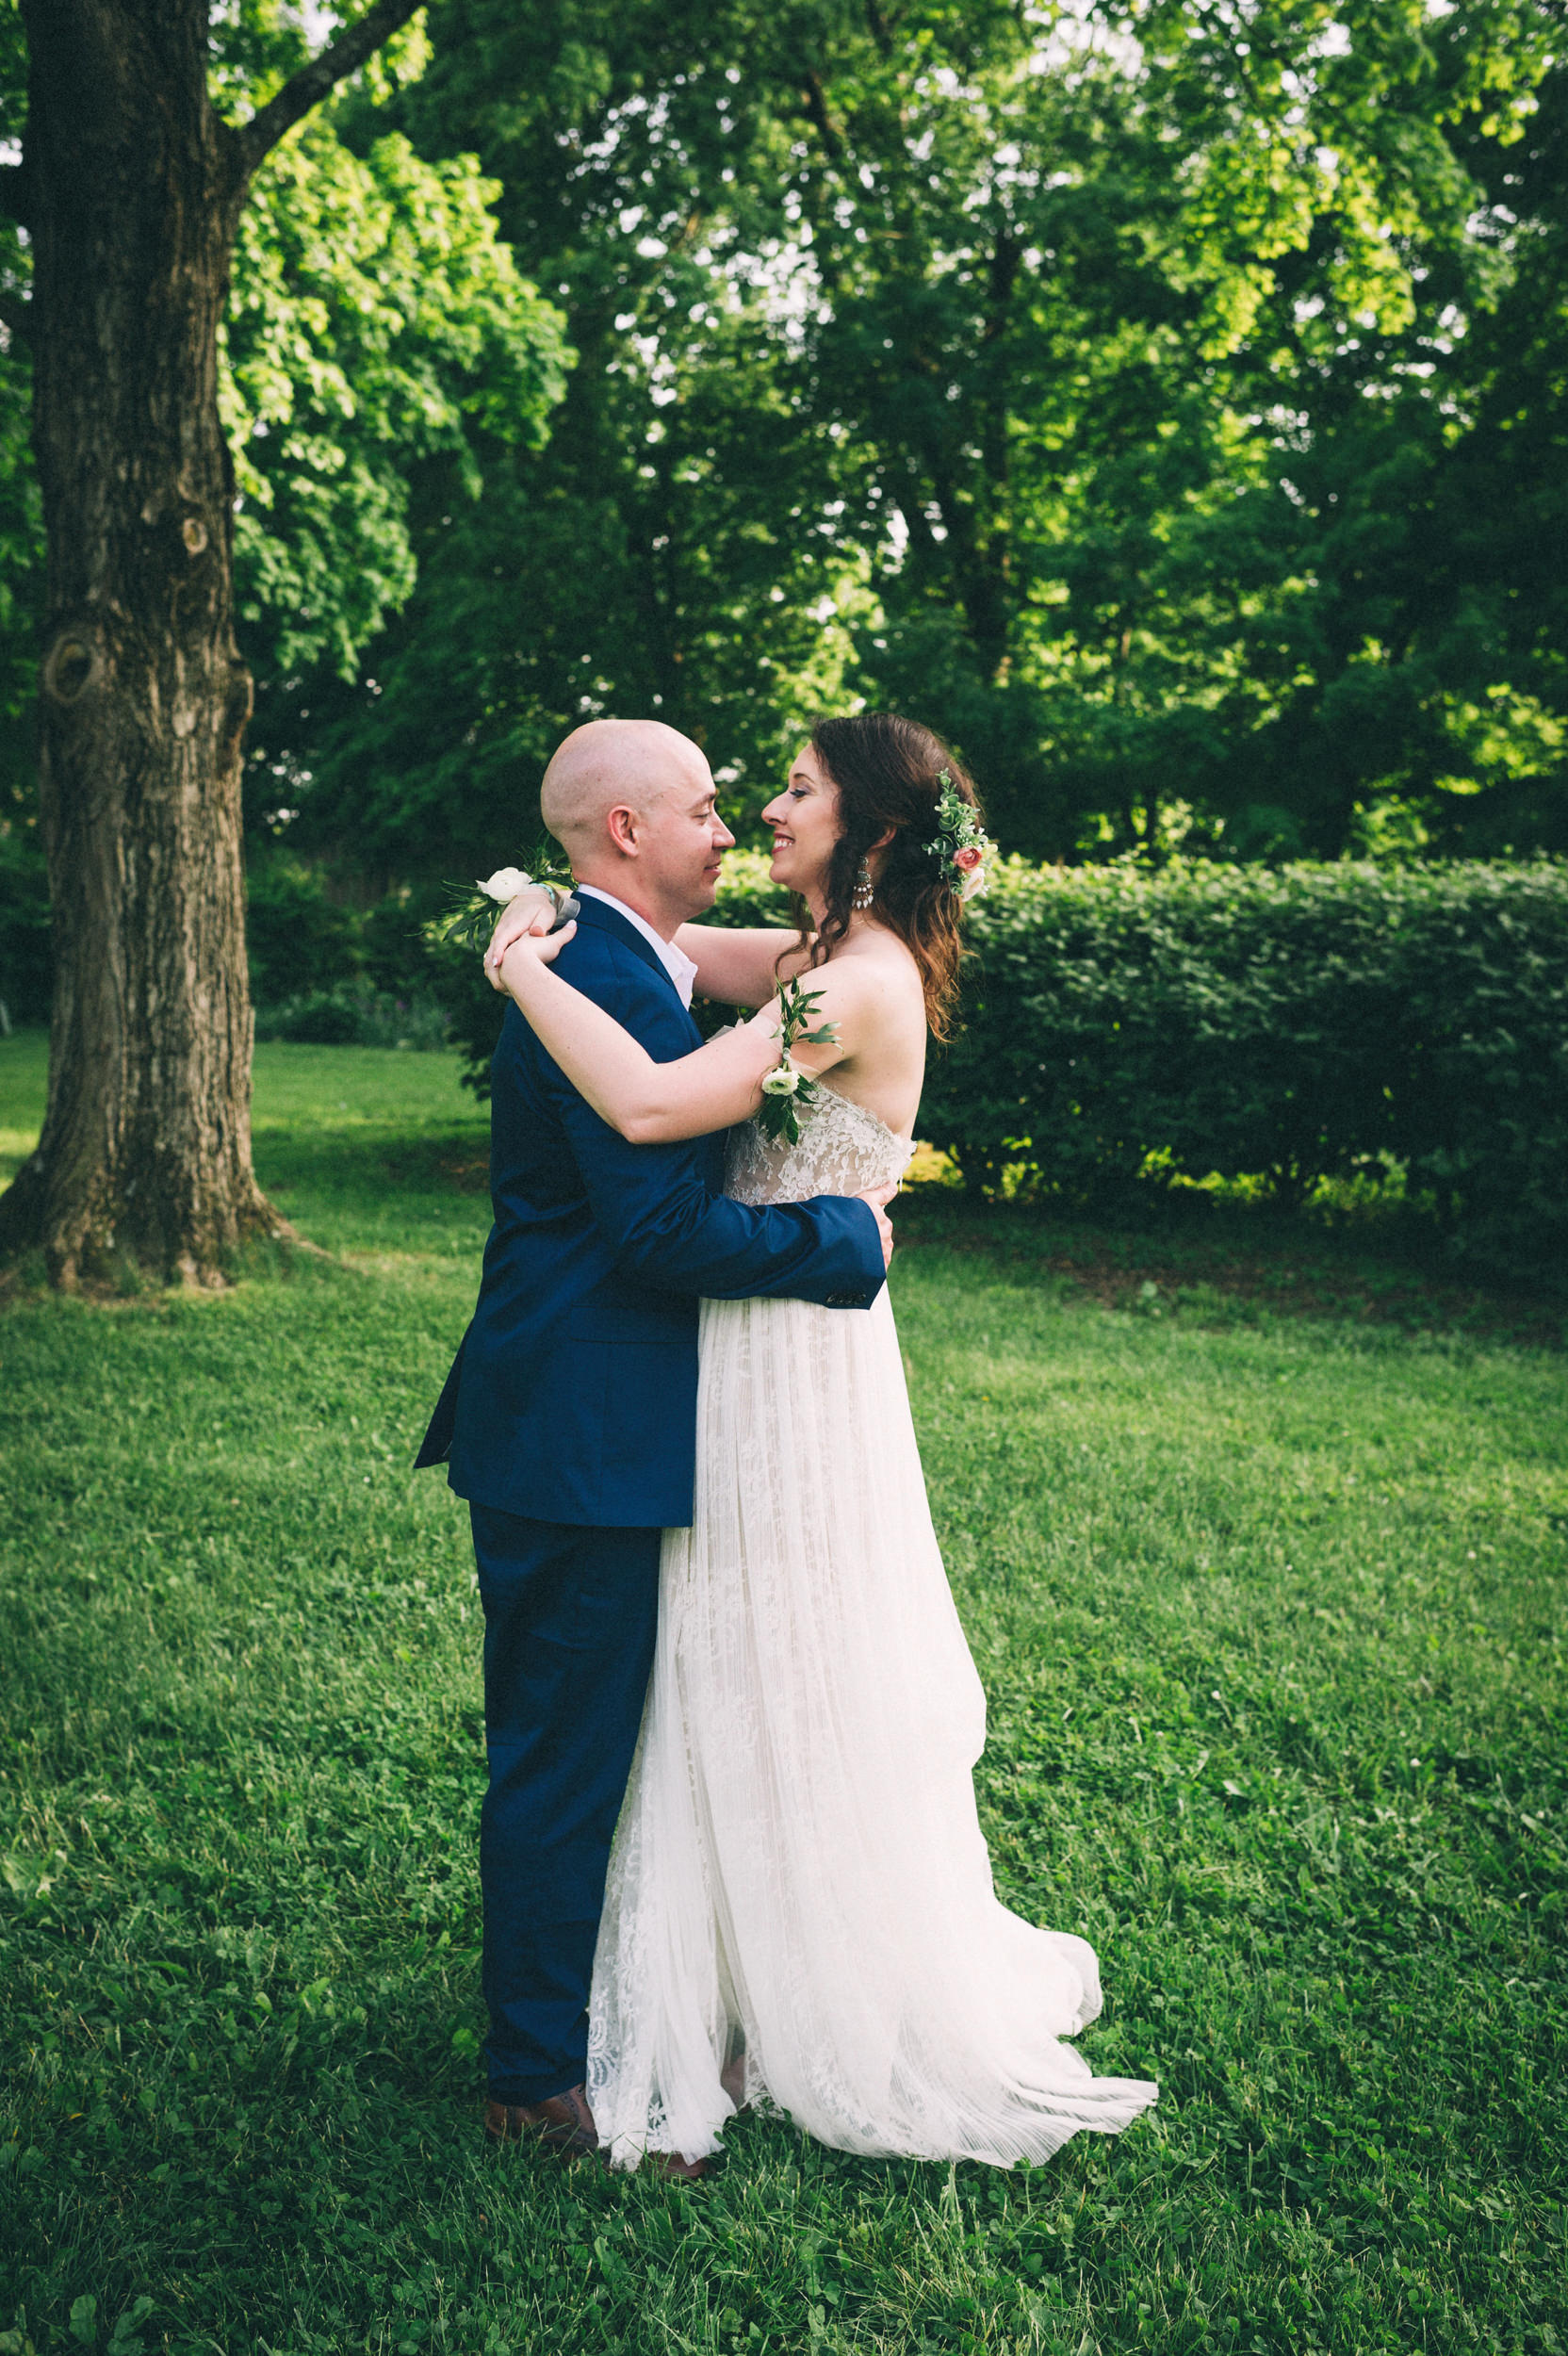 cassie-drew-wedding-farmington-sarah-katherine-davis-photography-409edit.jpg